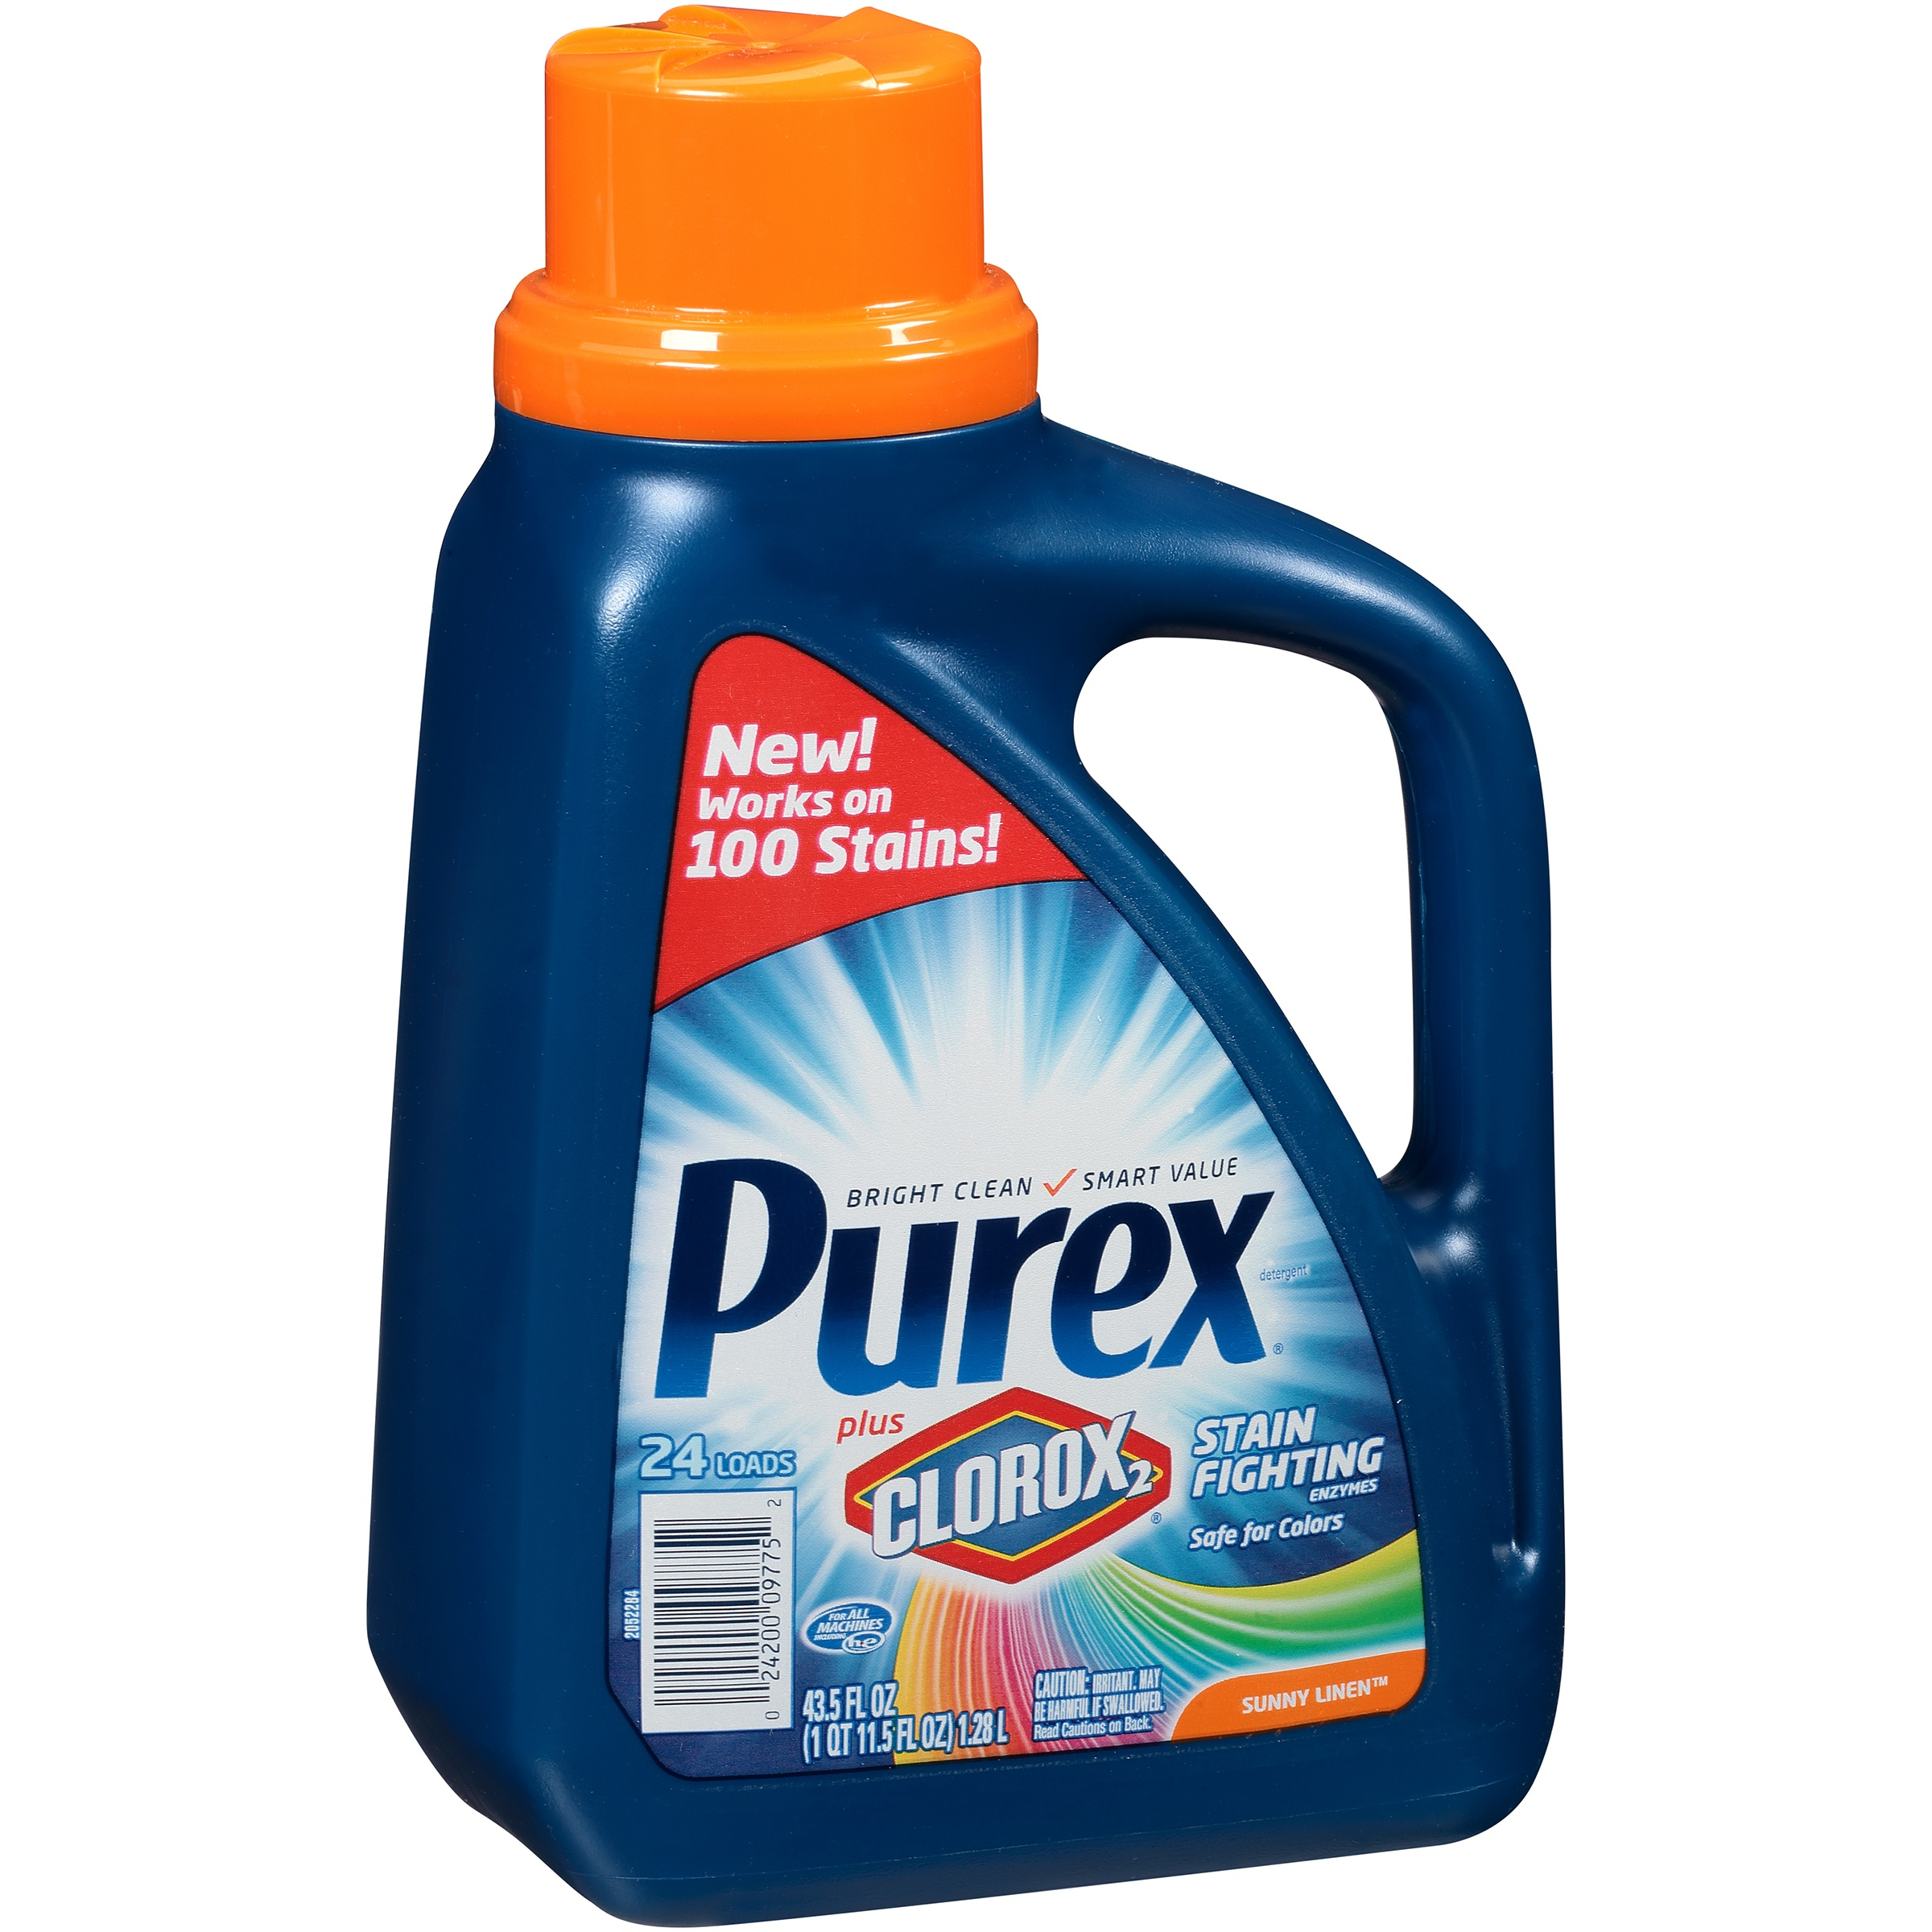 Free Purex Laundry Detergent At Price Chopper - My Momma Taught Me - Free Printable Purex Detergent Coupons